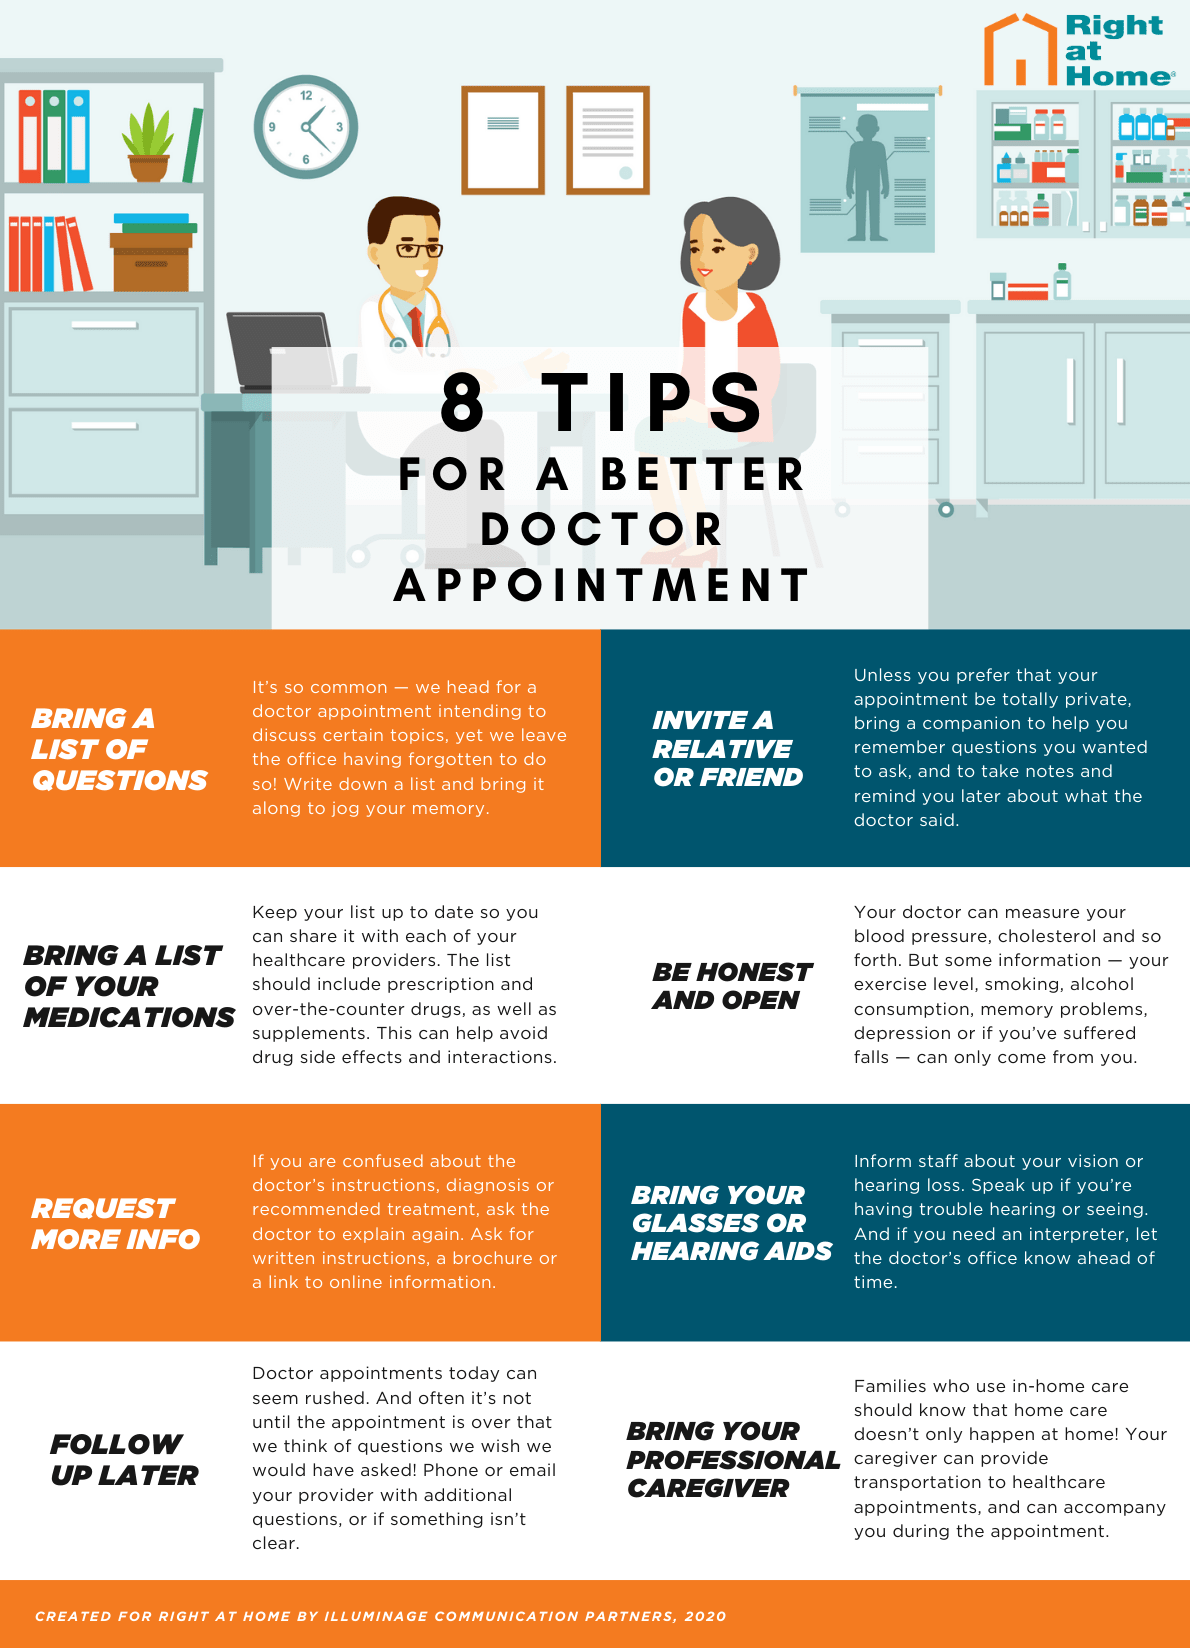 Infographic: 8 tips for a better doctor appointment